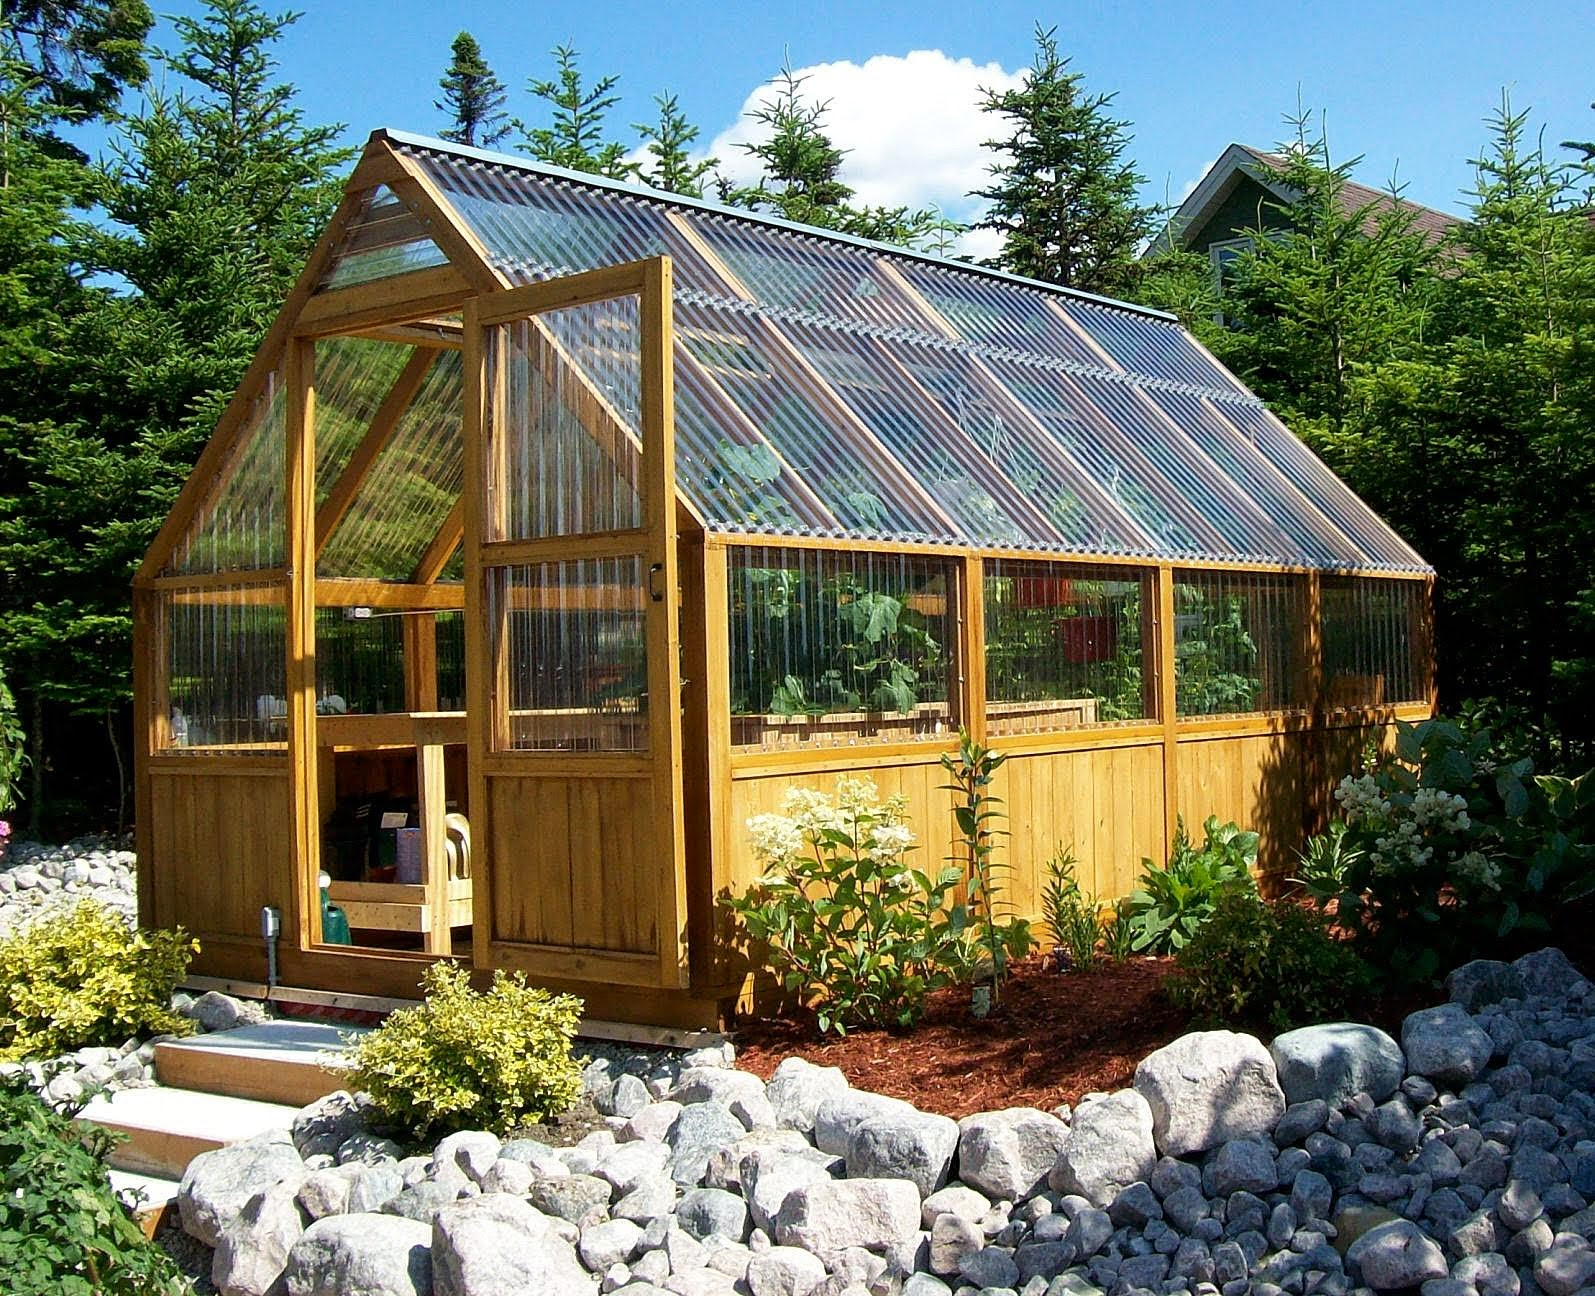 13 great diy greenhouse ideas instant knowledge Free greenhouse plans and designs